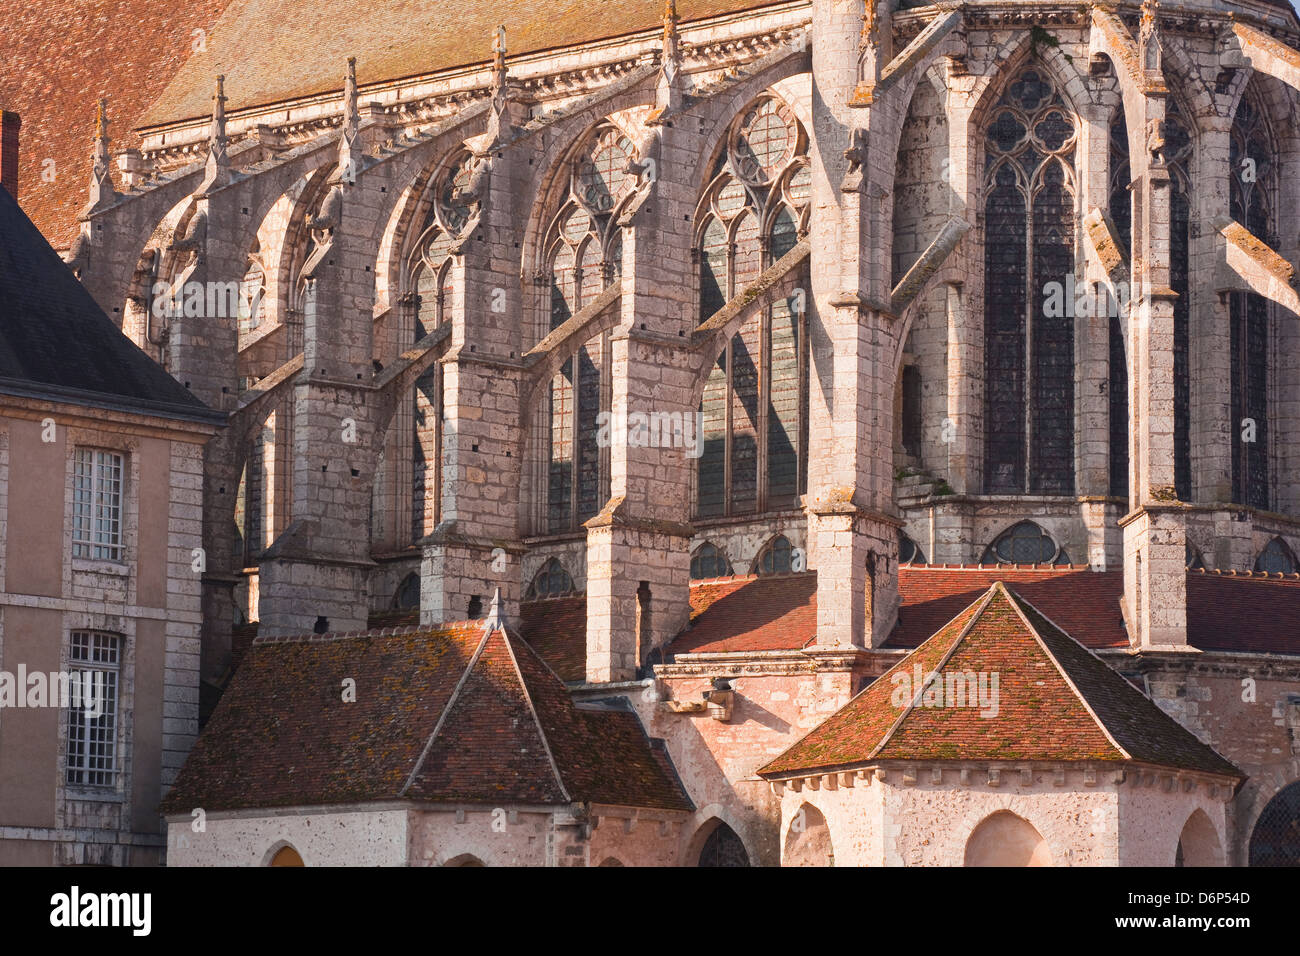 Flying butresses on the church abbey of Saint Pierre in Chartres, Eure-et-Loir, Centre, France, Europe - Stock Image